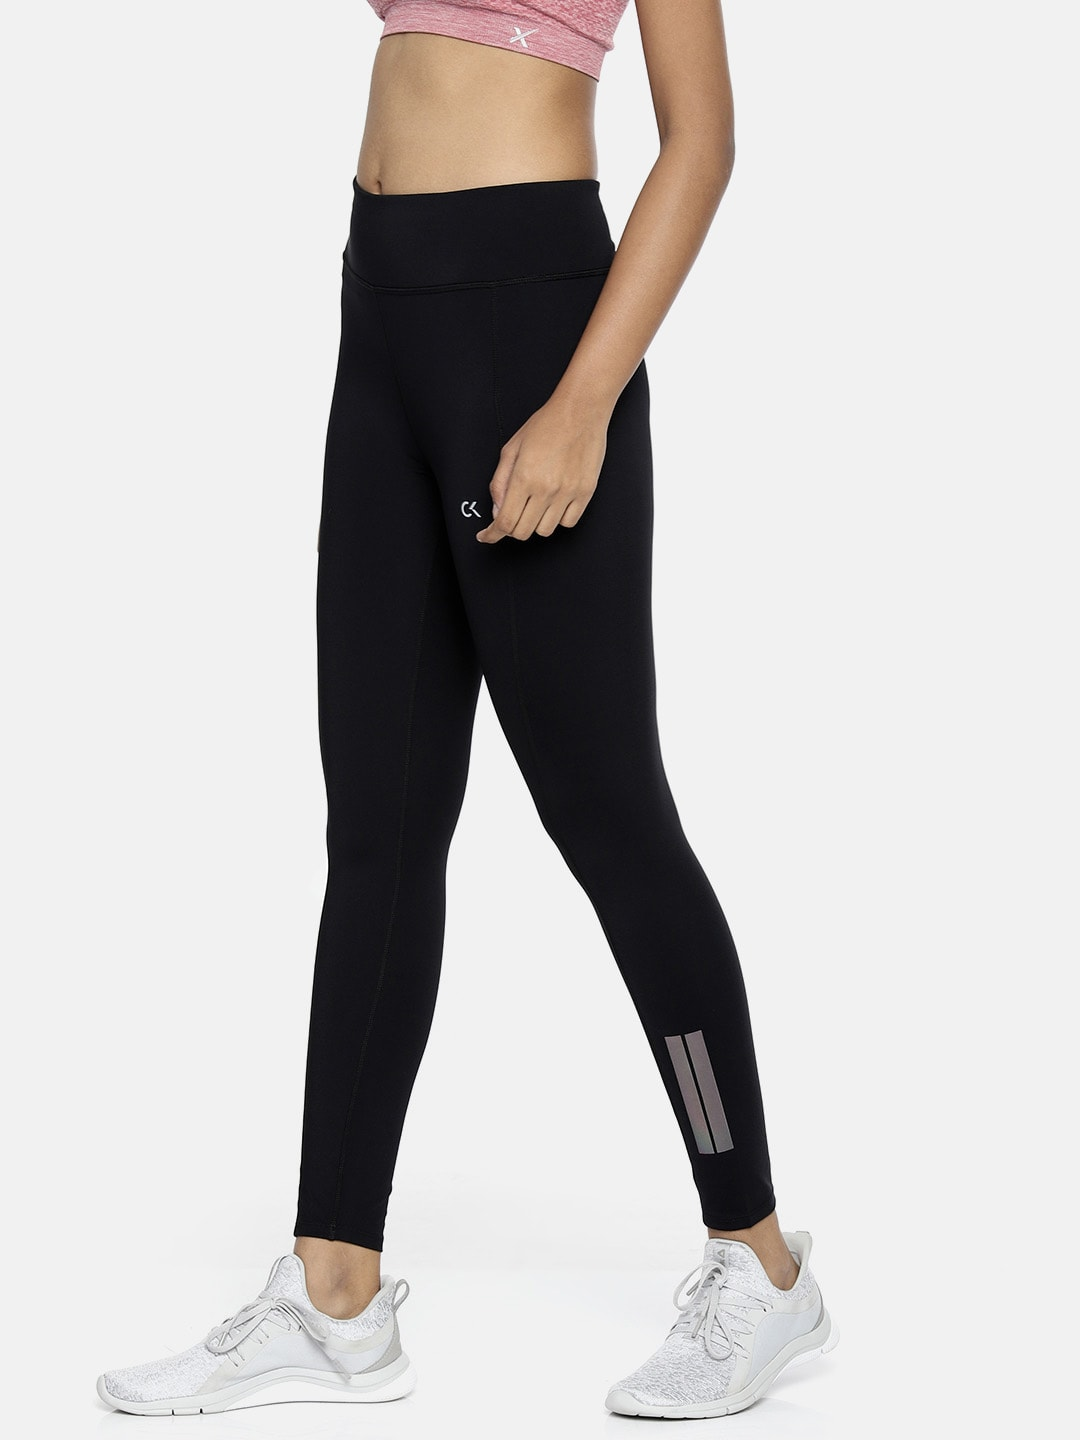 bb77150f971b7a Tights For Men, Women & Girls - Buy Tights For Men, Women & Girls online in  India